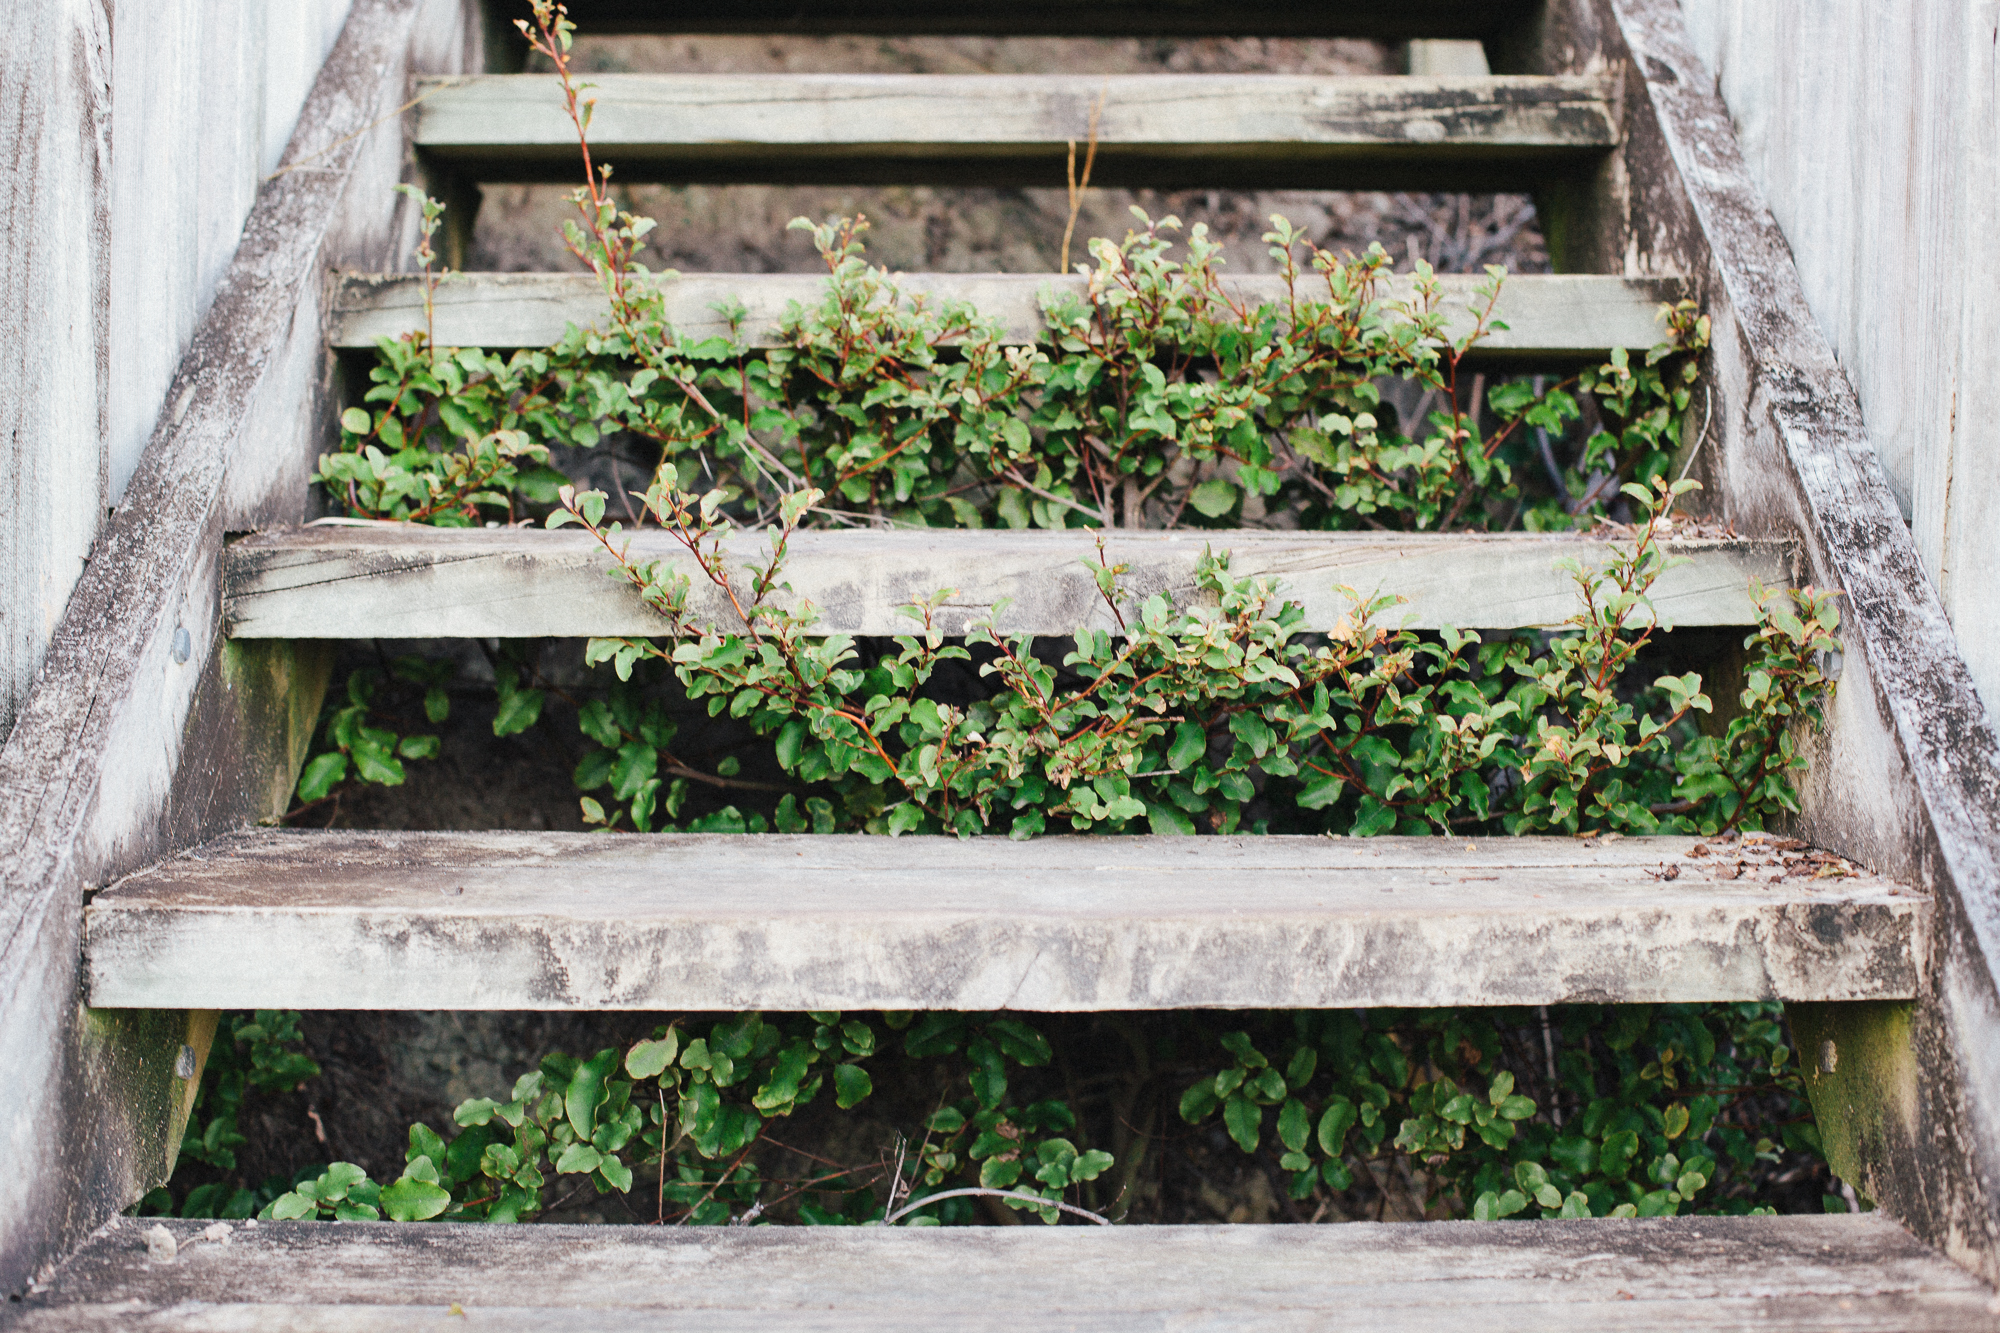 trees growing through stairs. by leonie wise